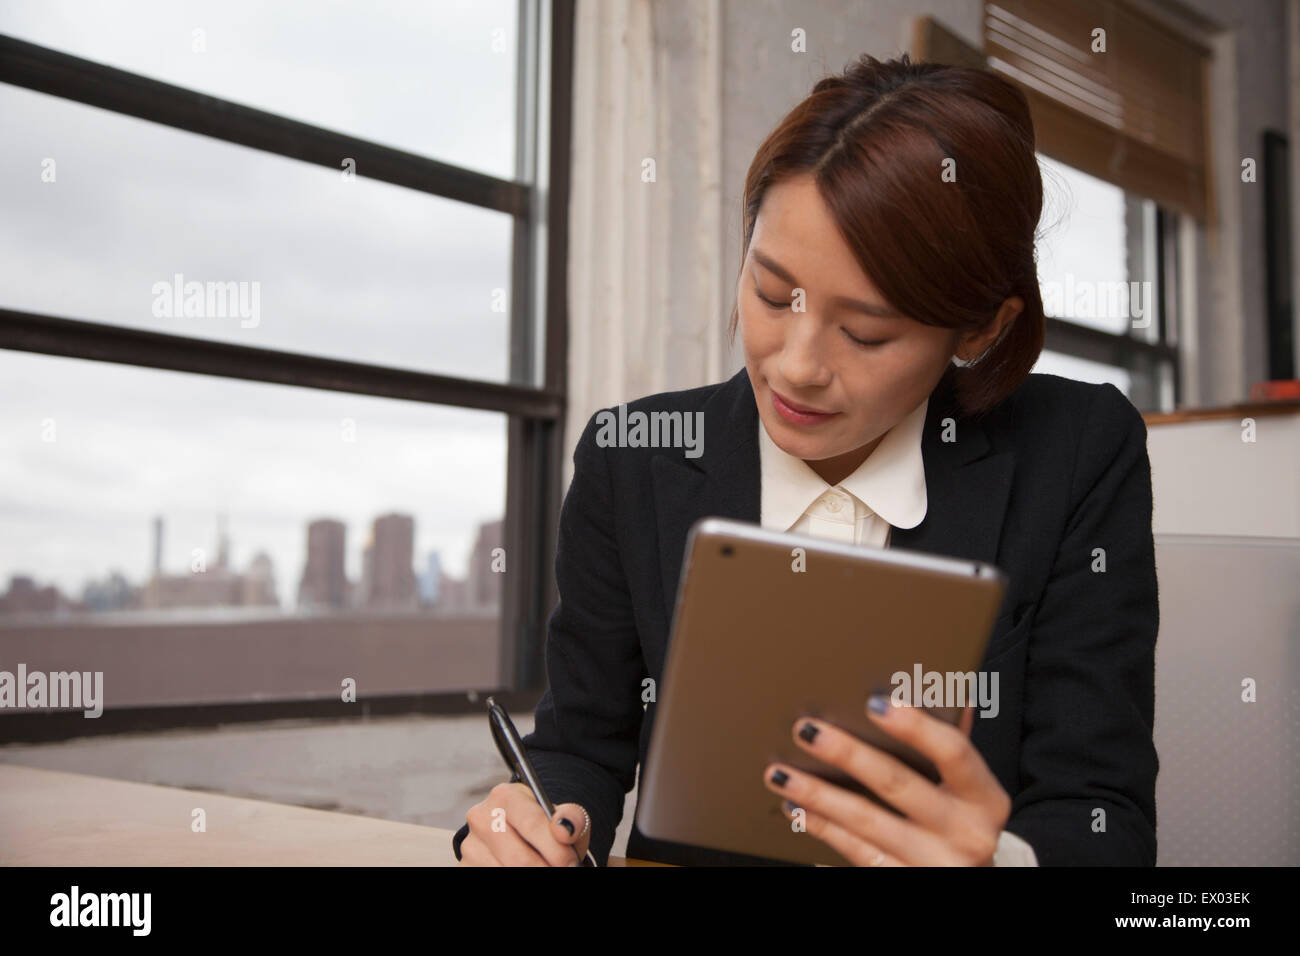 Businesswoman holding digital tablet and writing notes - Stock Image